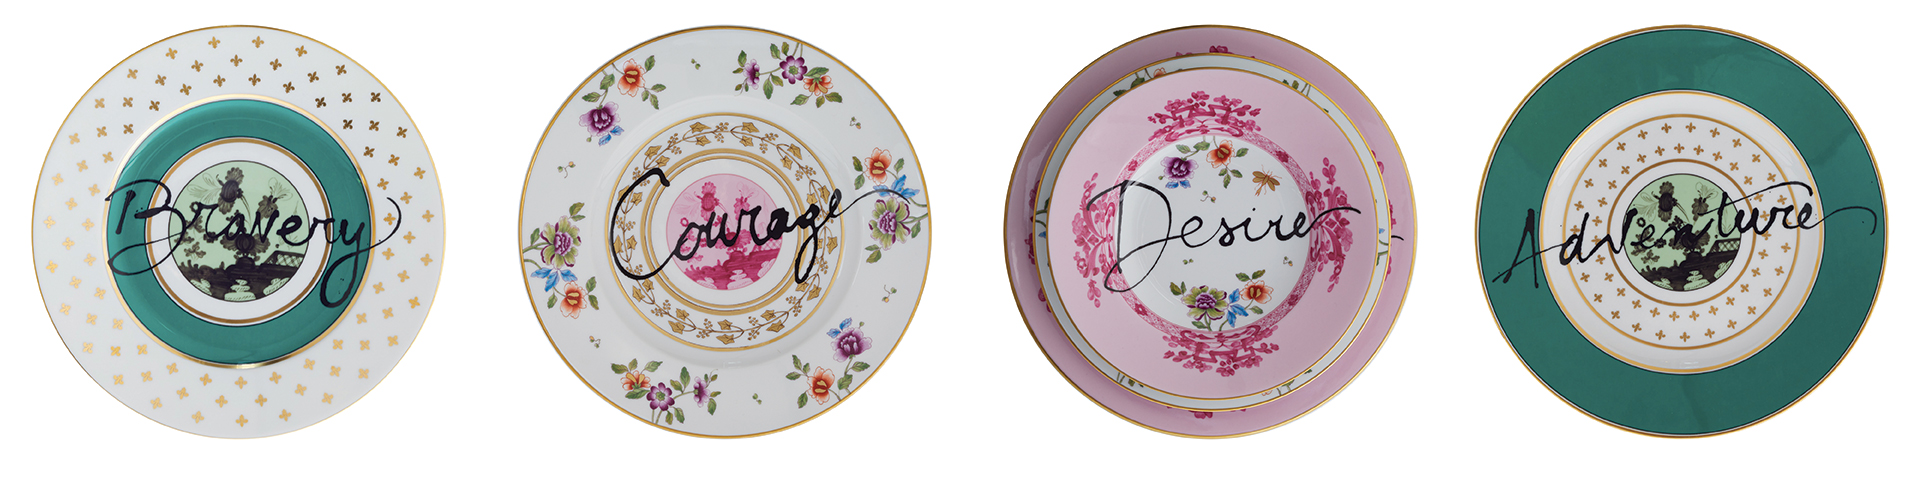 vintage tableware plates artemest road to heave is paved with excess collection zodiac design